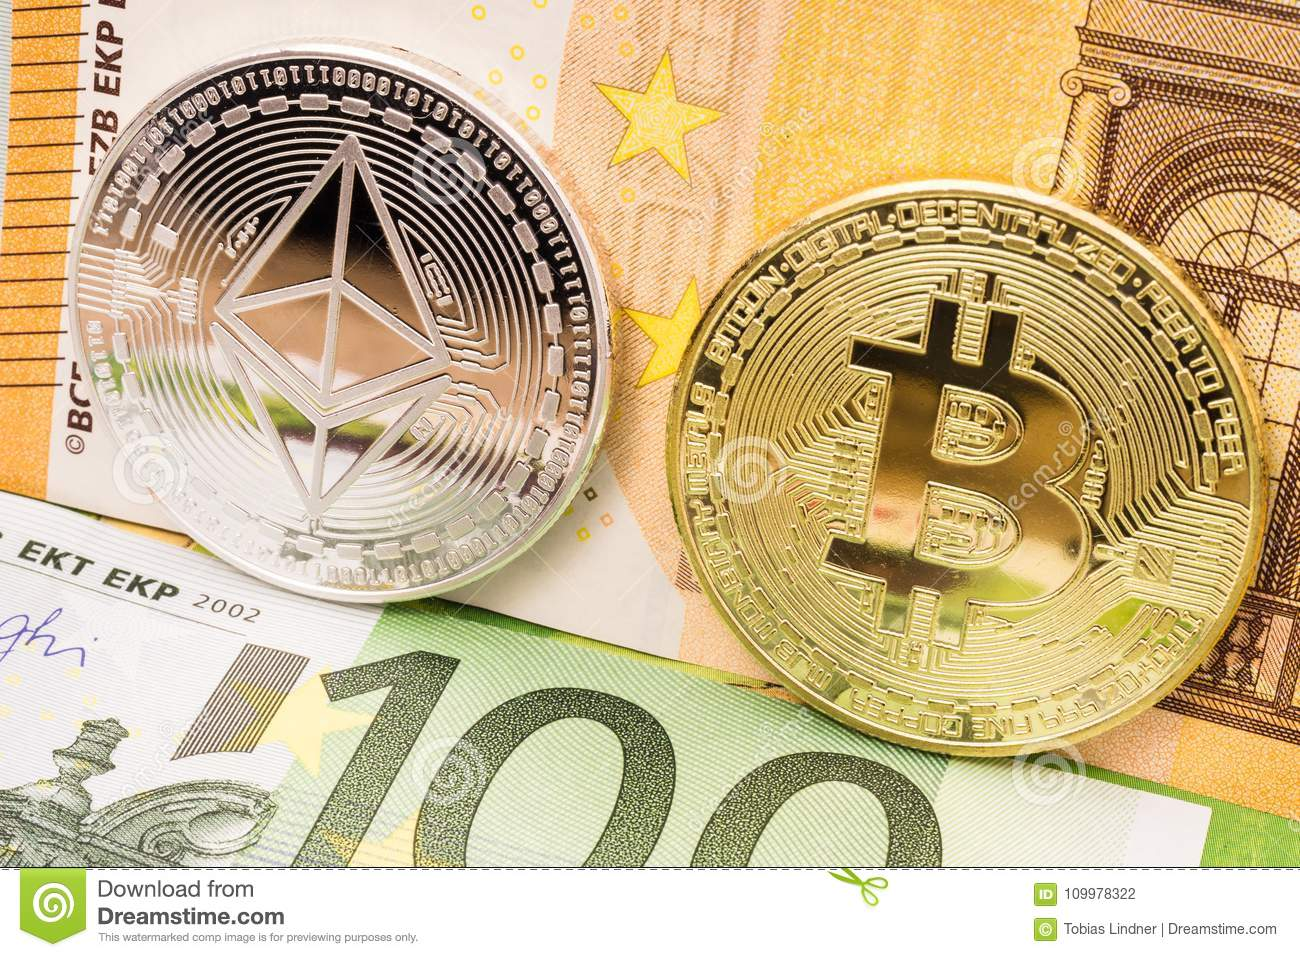 Bitcoin And Ethereum Coins On Euro Money Bills Stock Photo - Image of network, euro: 109978322